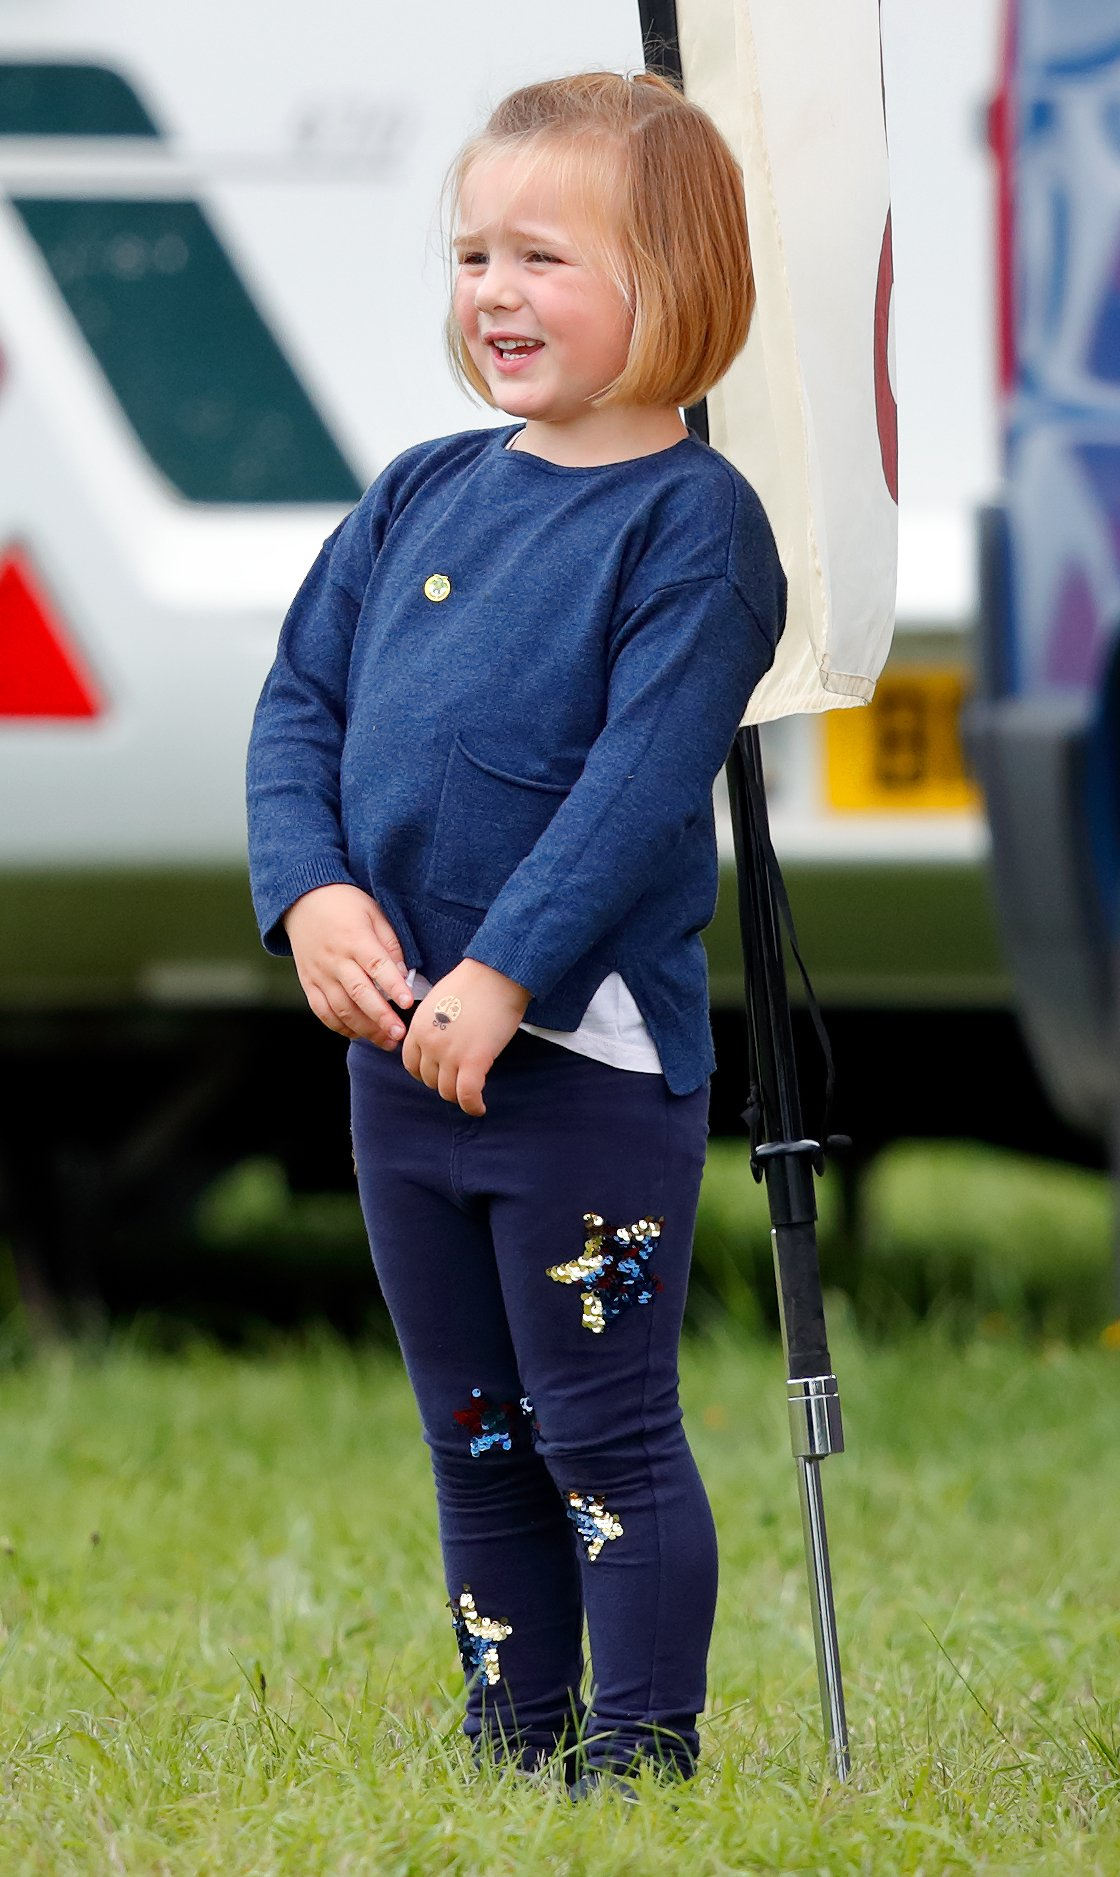 Image de Mia Tindall : Getty Images.